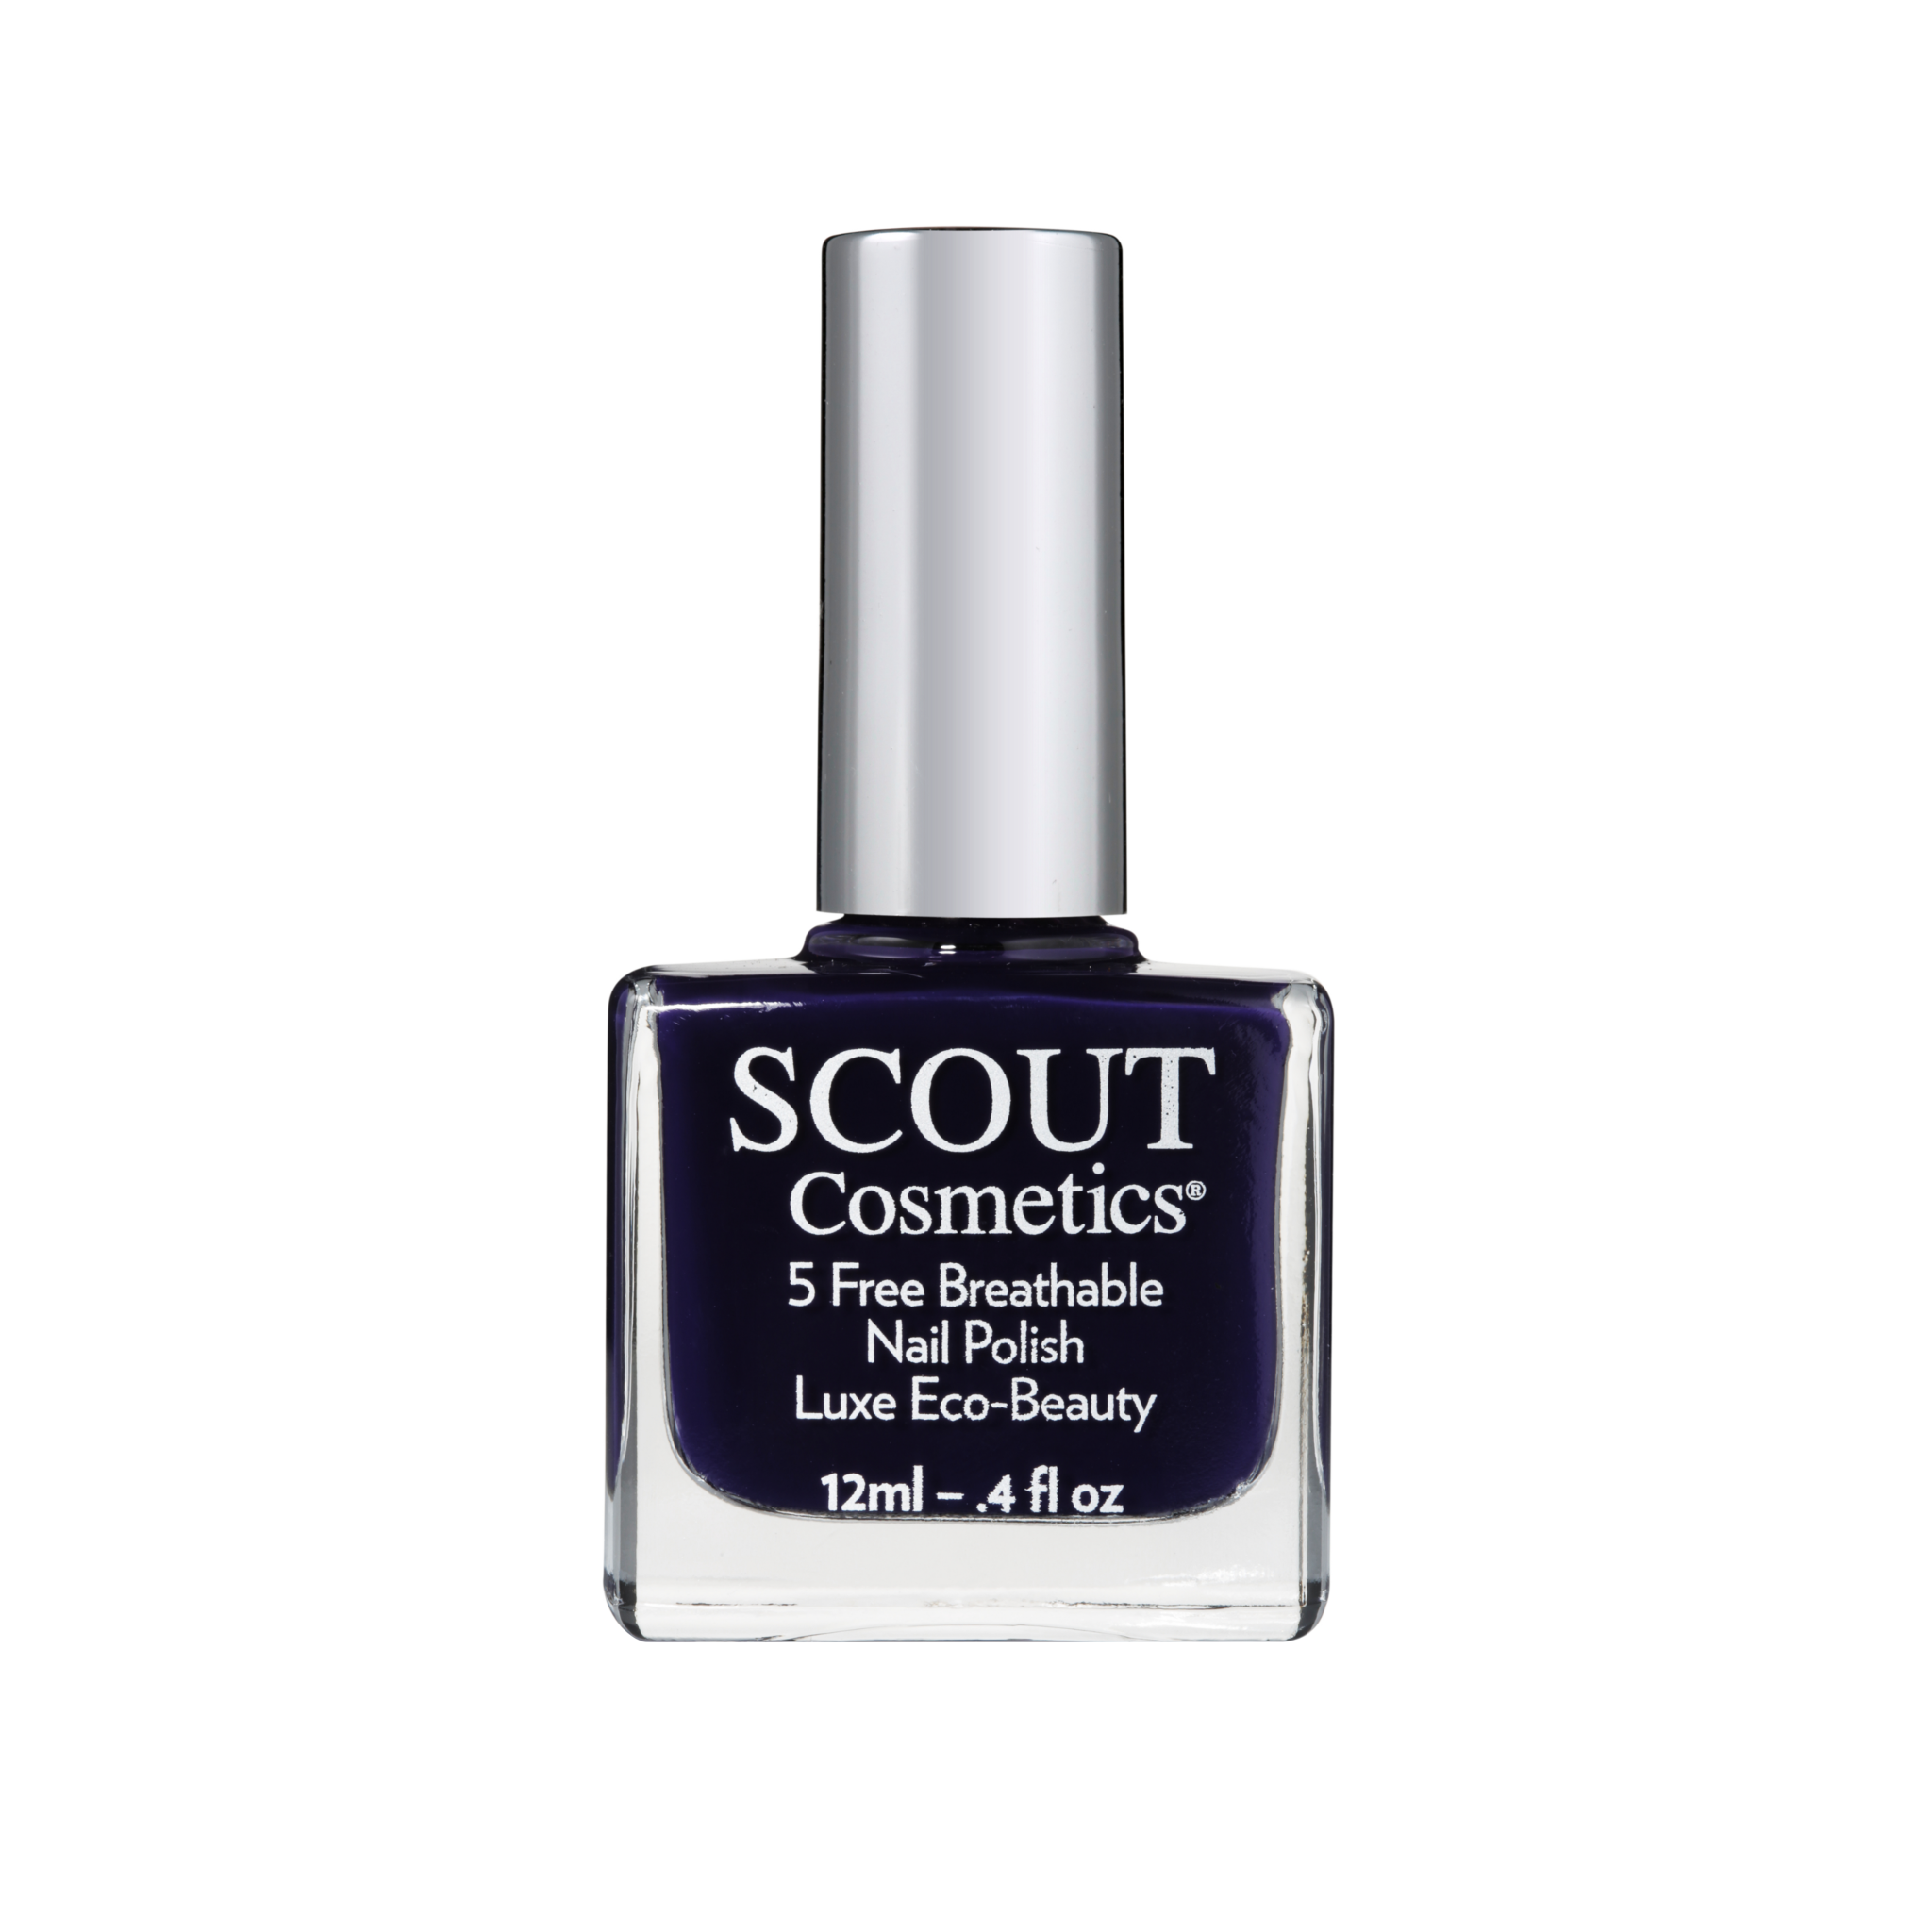 SCOUT Cosmetics Nail Polish - Surrender Yourself